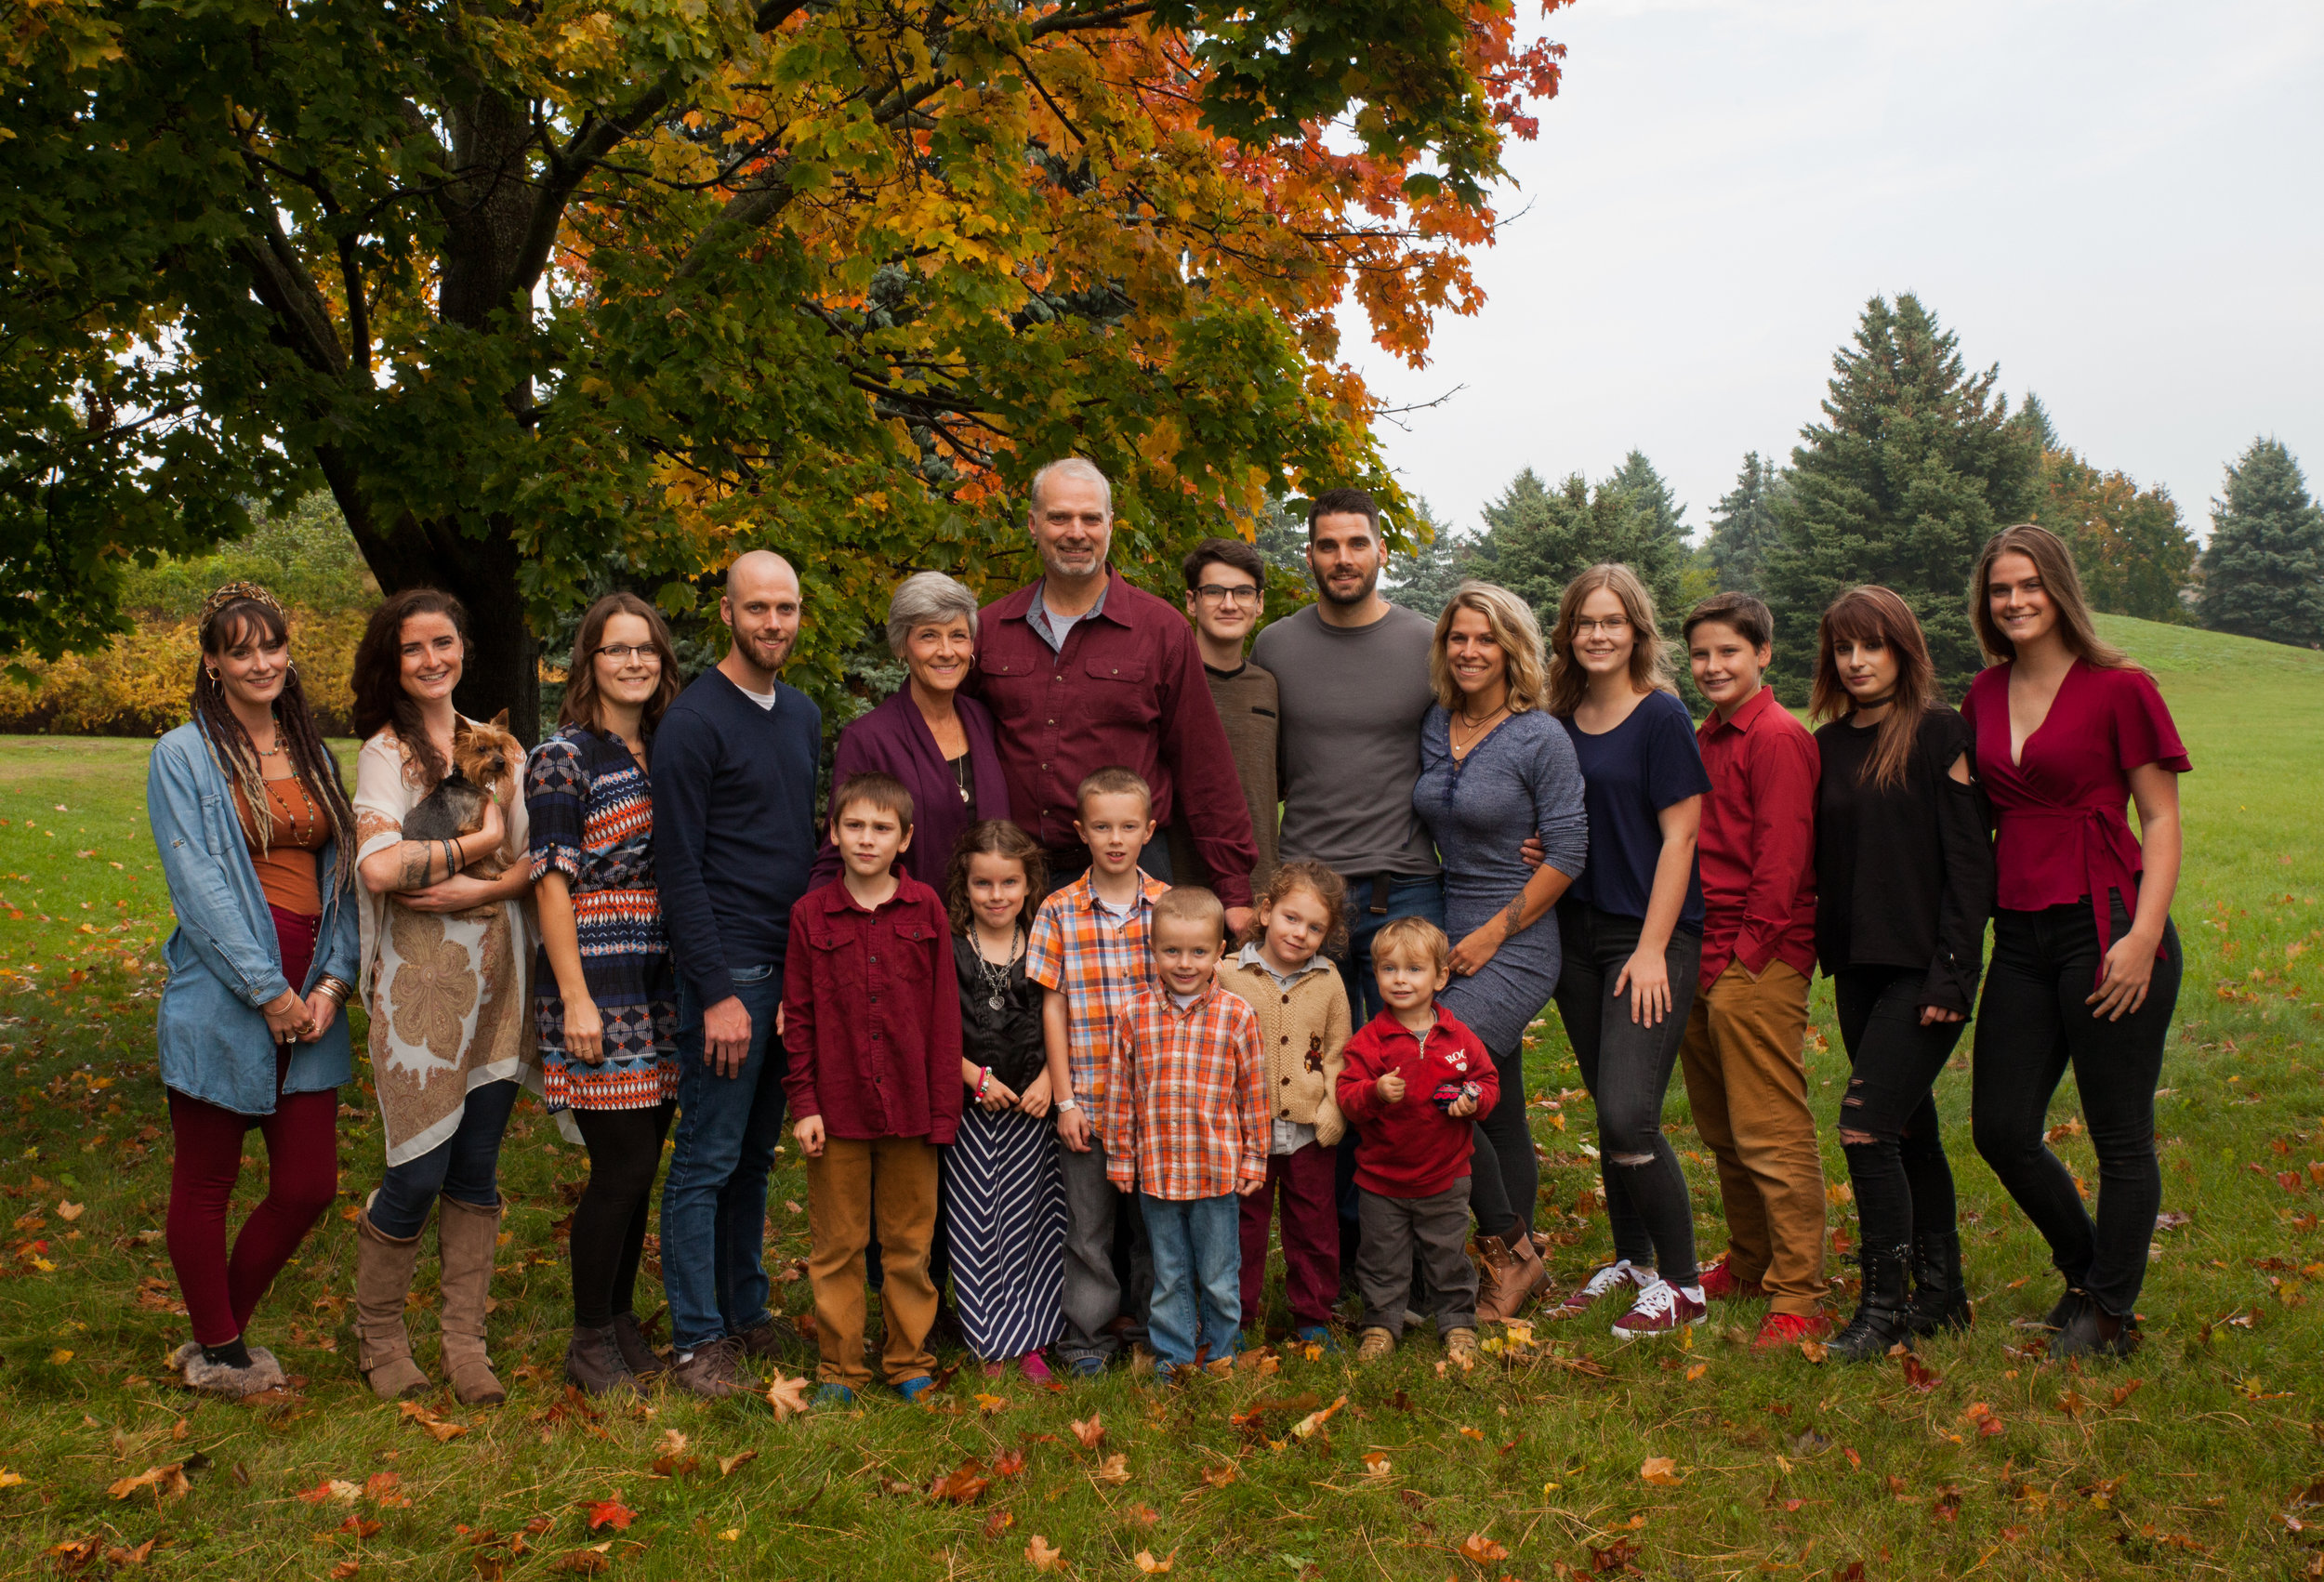 Michelle's Family - The Houghton family